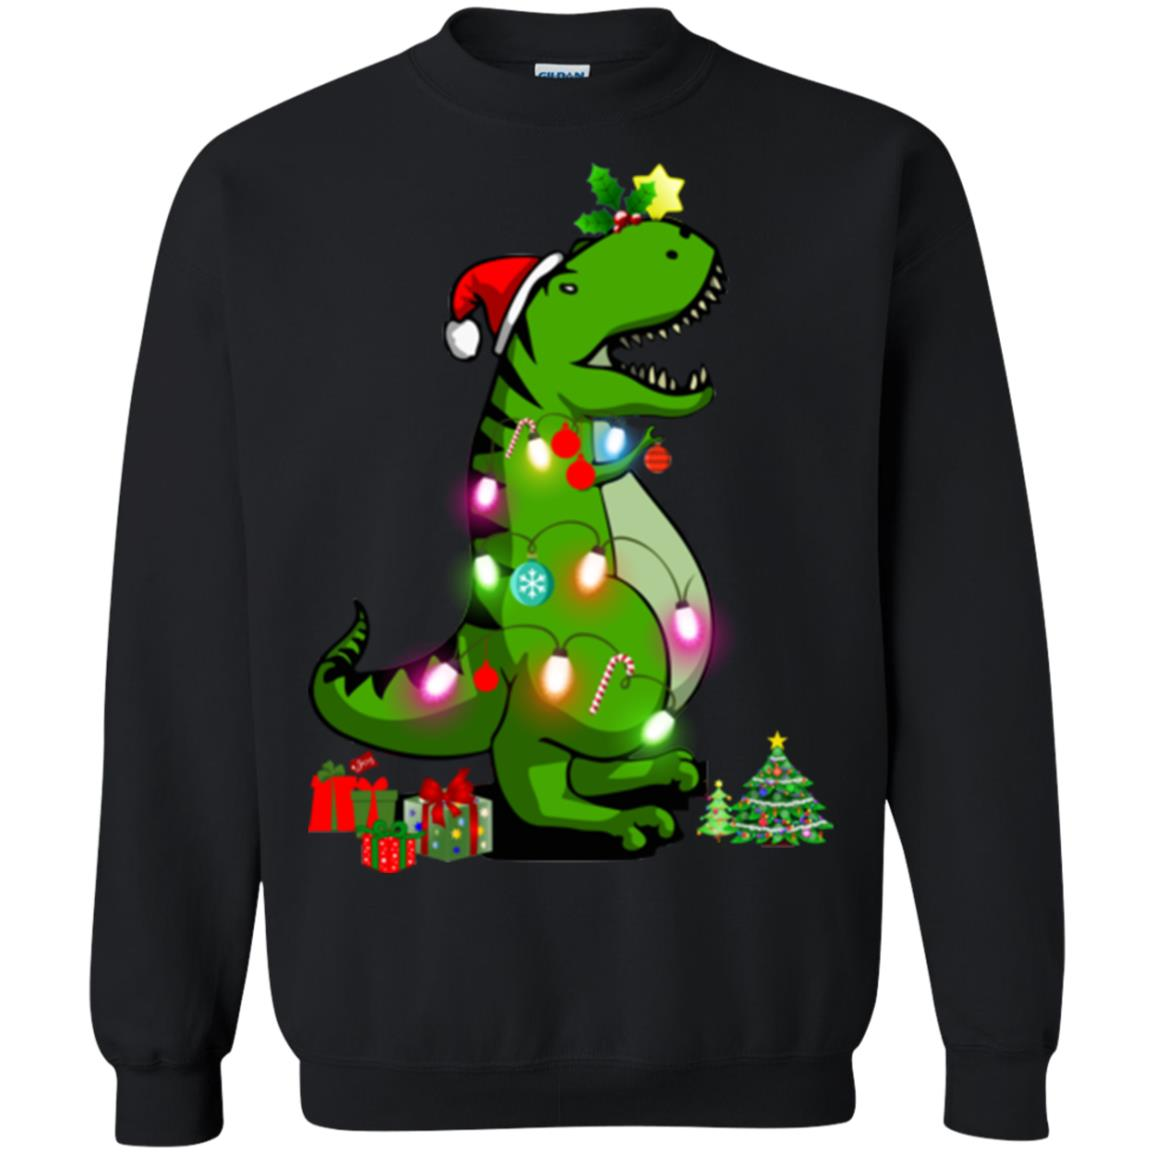 image 2256 - T-Rex Christmas Tree Sweater, Shirt, Hoodie